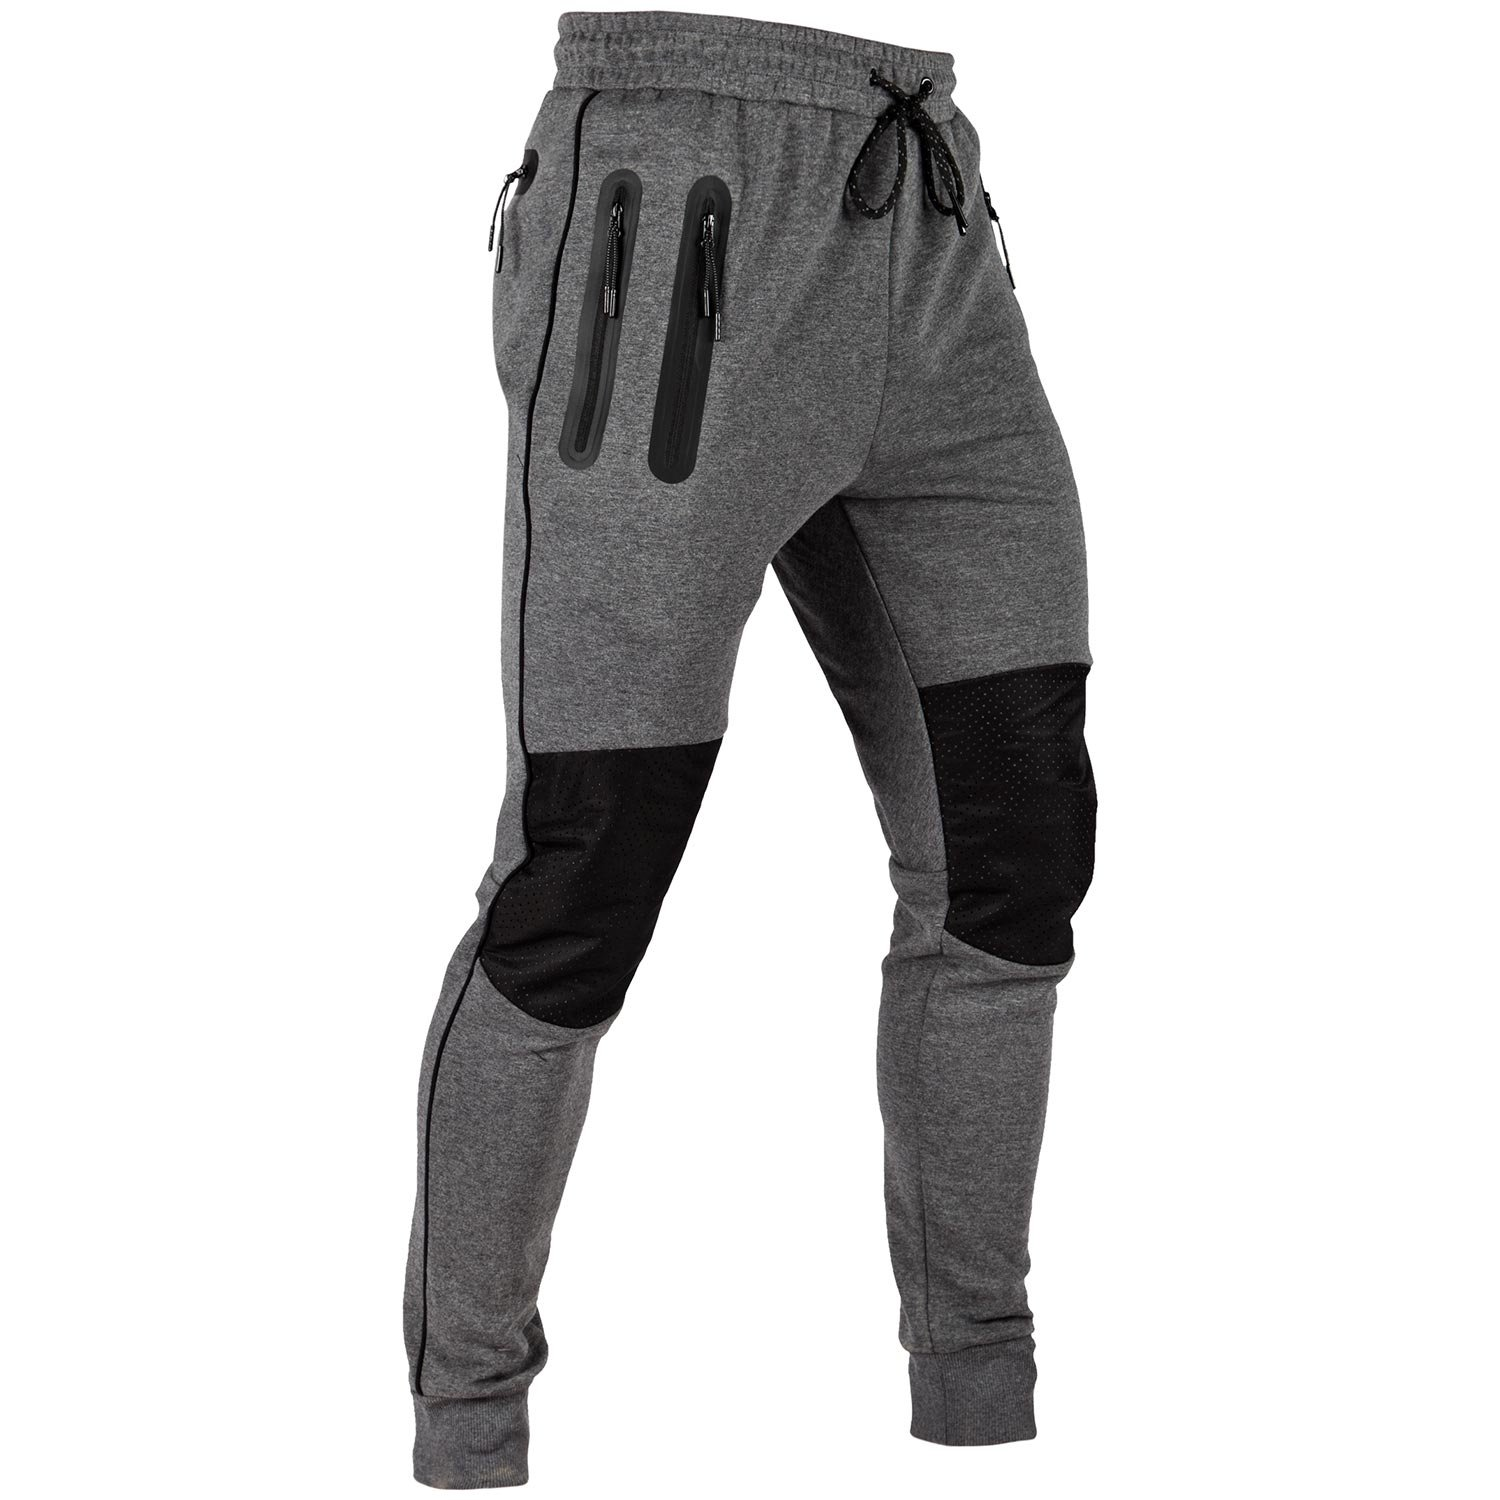 Venum Laser Pants - L, Grey, Large by Venum